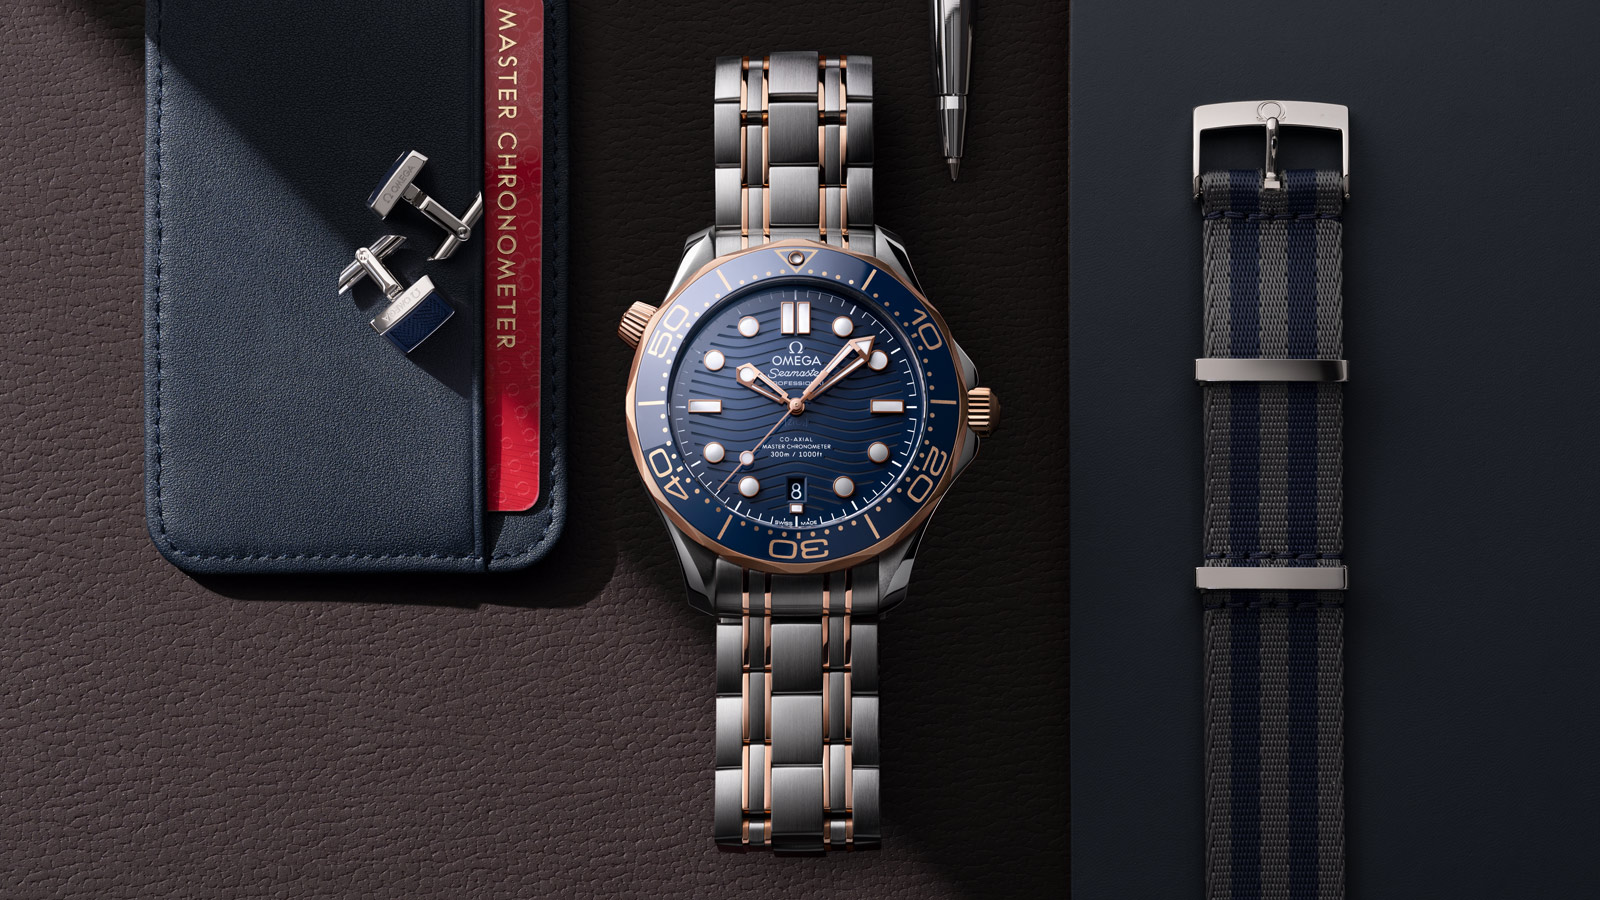 Seamaster Diver 300 M Diver 300M Omega Co‑Axial Master Chronometer 42 mm Relógio - 210.20.42.20.03.002